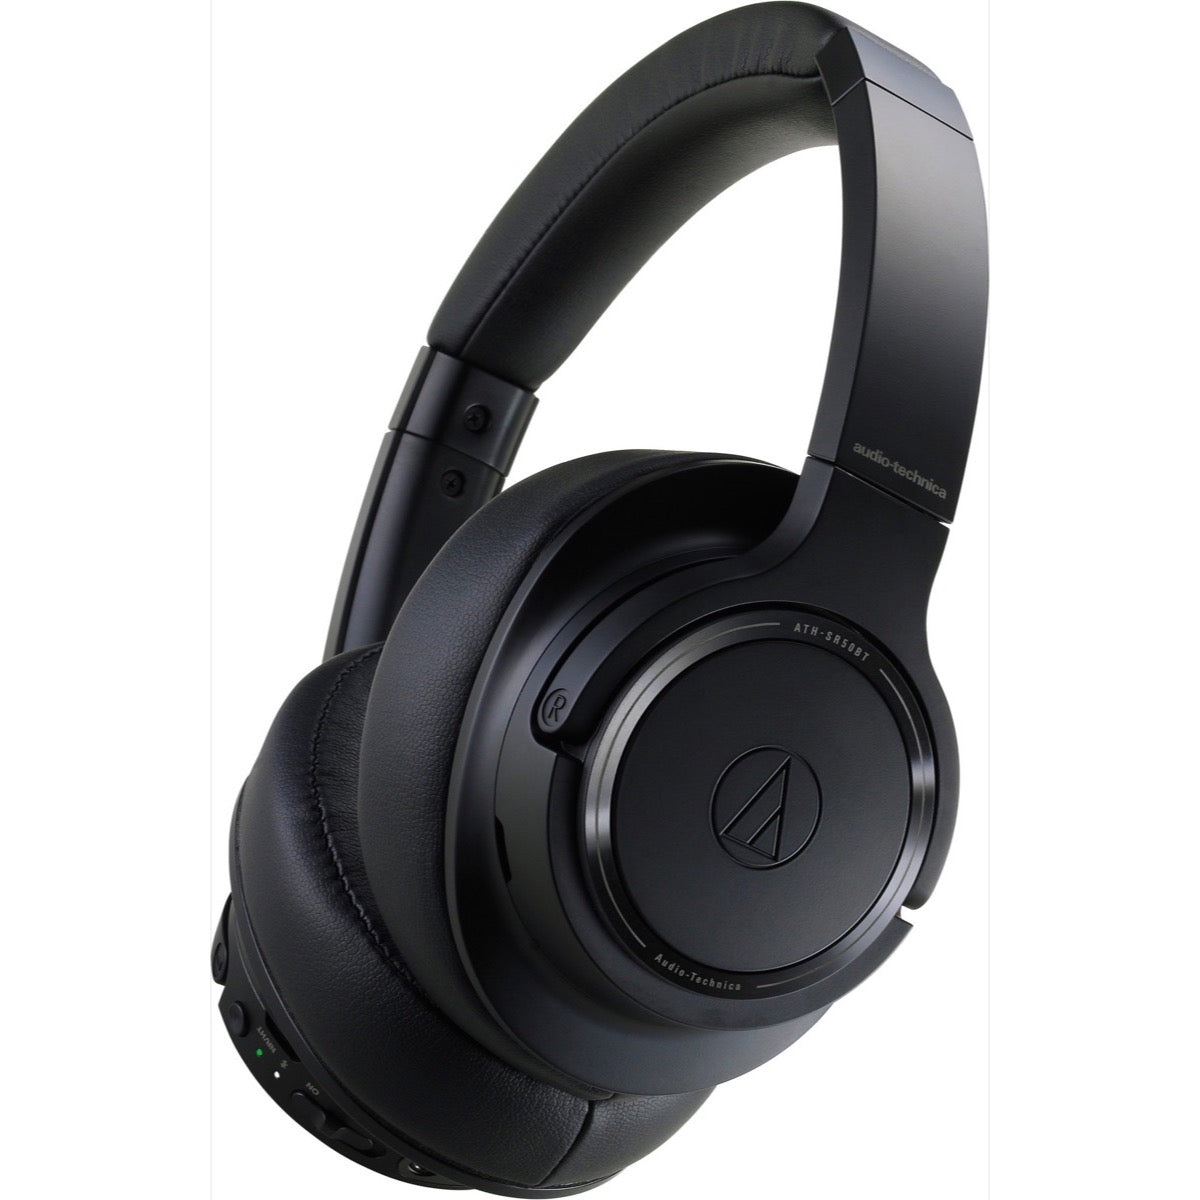 Audio-Technica ATH-SR50BT Wireless Headphones, Black